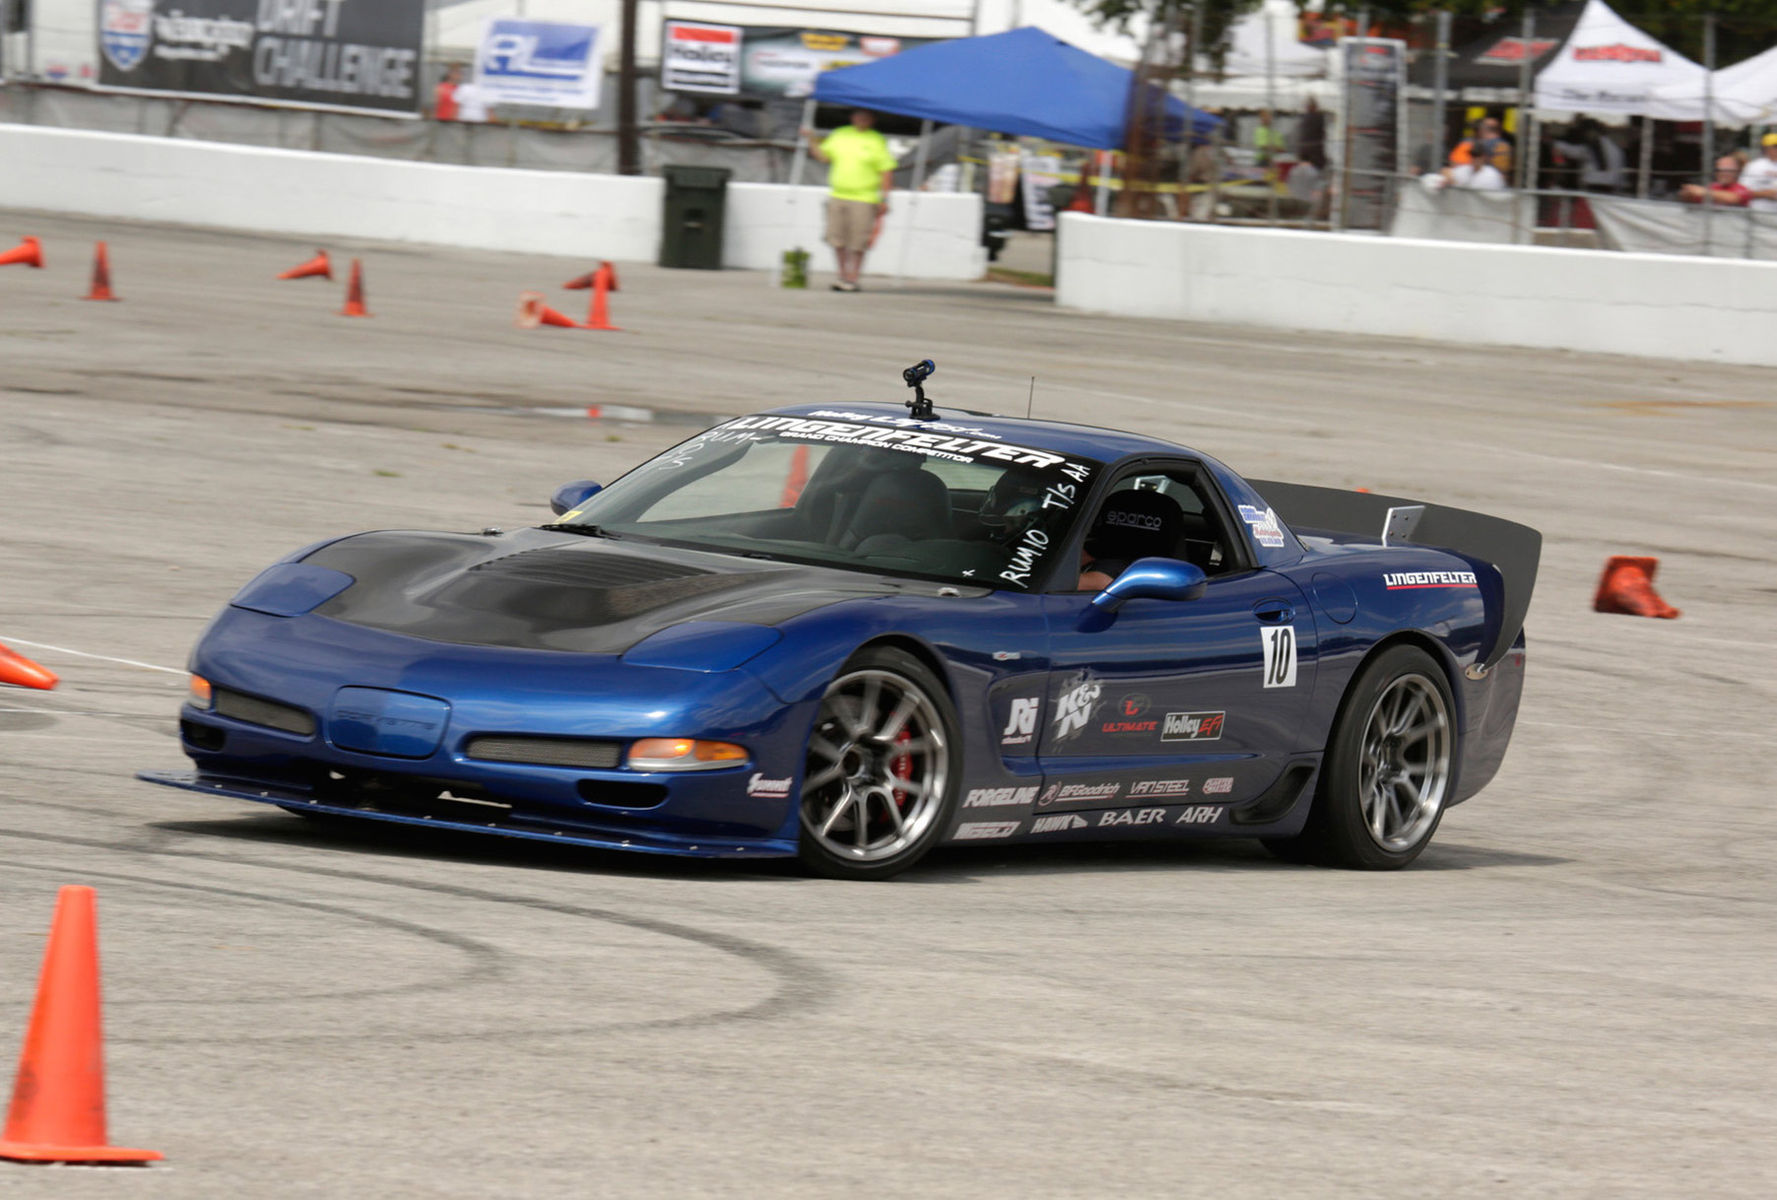 2003 Chevrolet Corvette Z06 | Danny Popp's Corvette on Forgeline GS1R Wheels